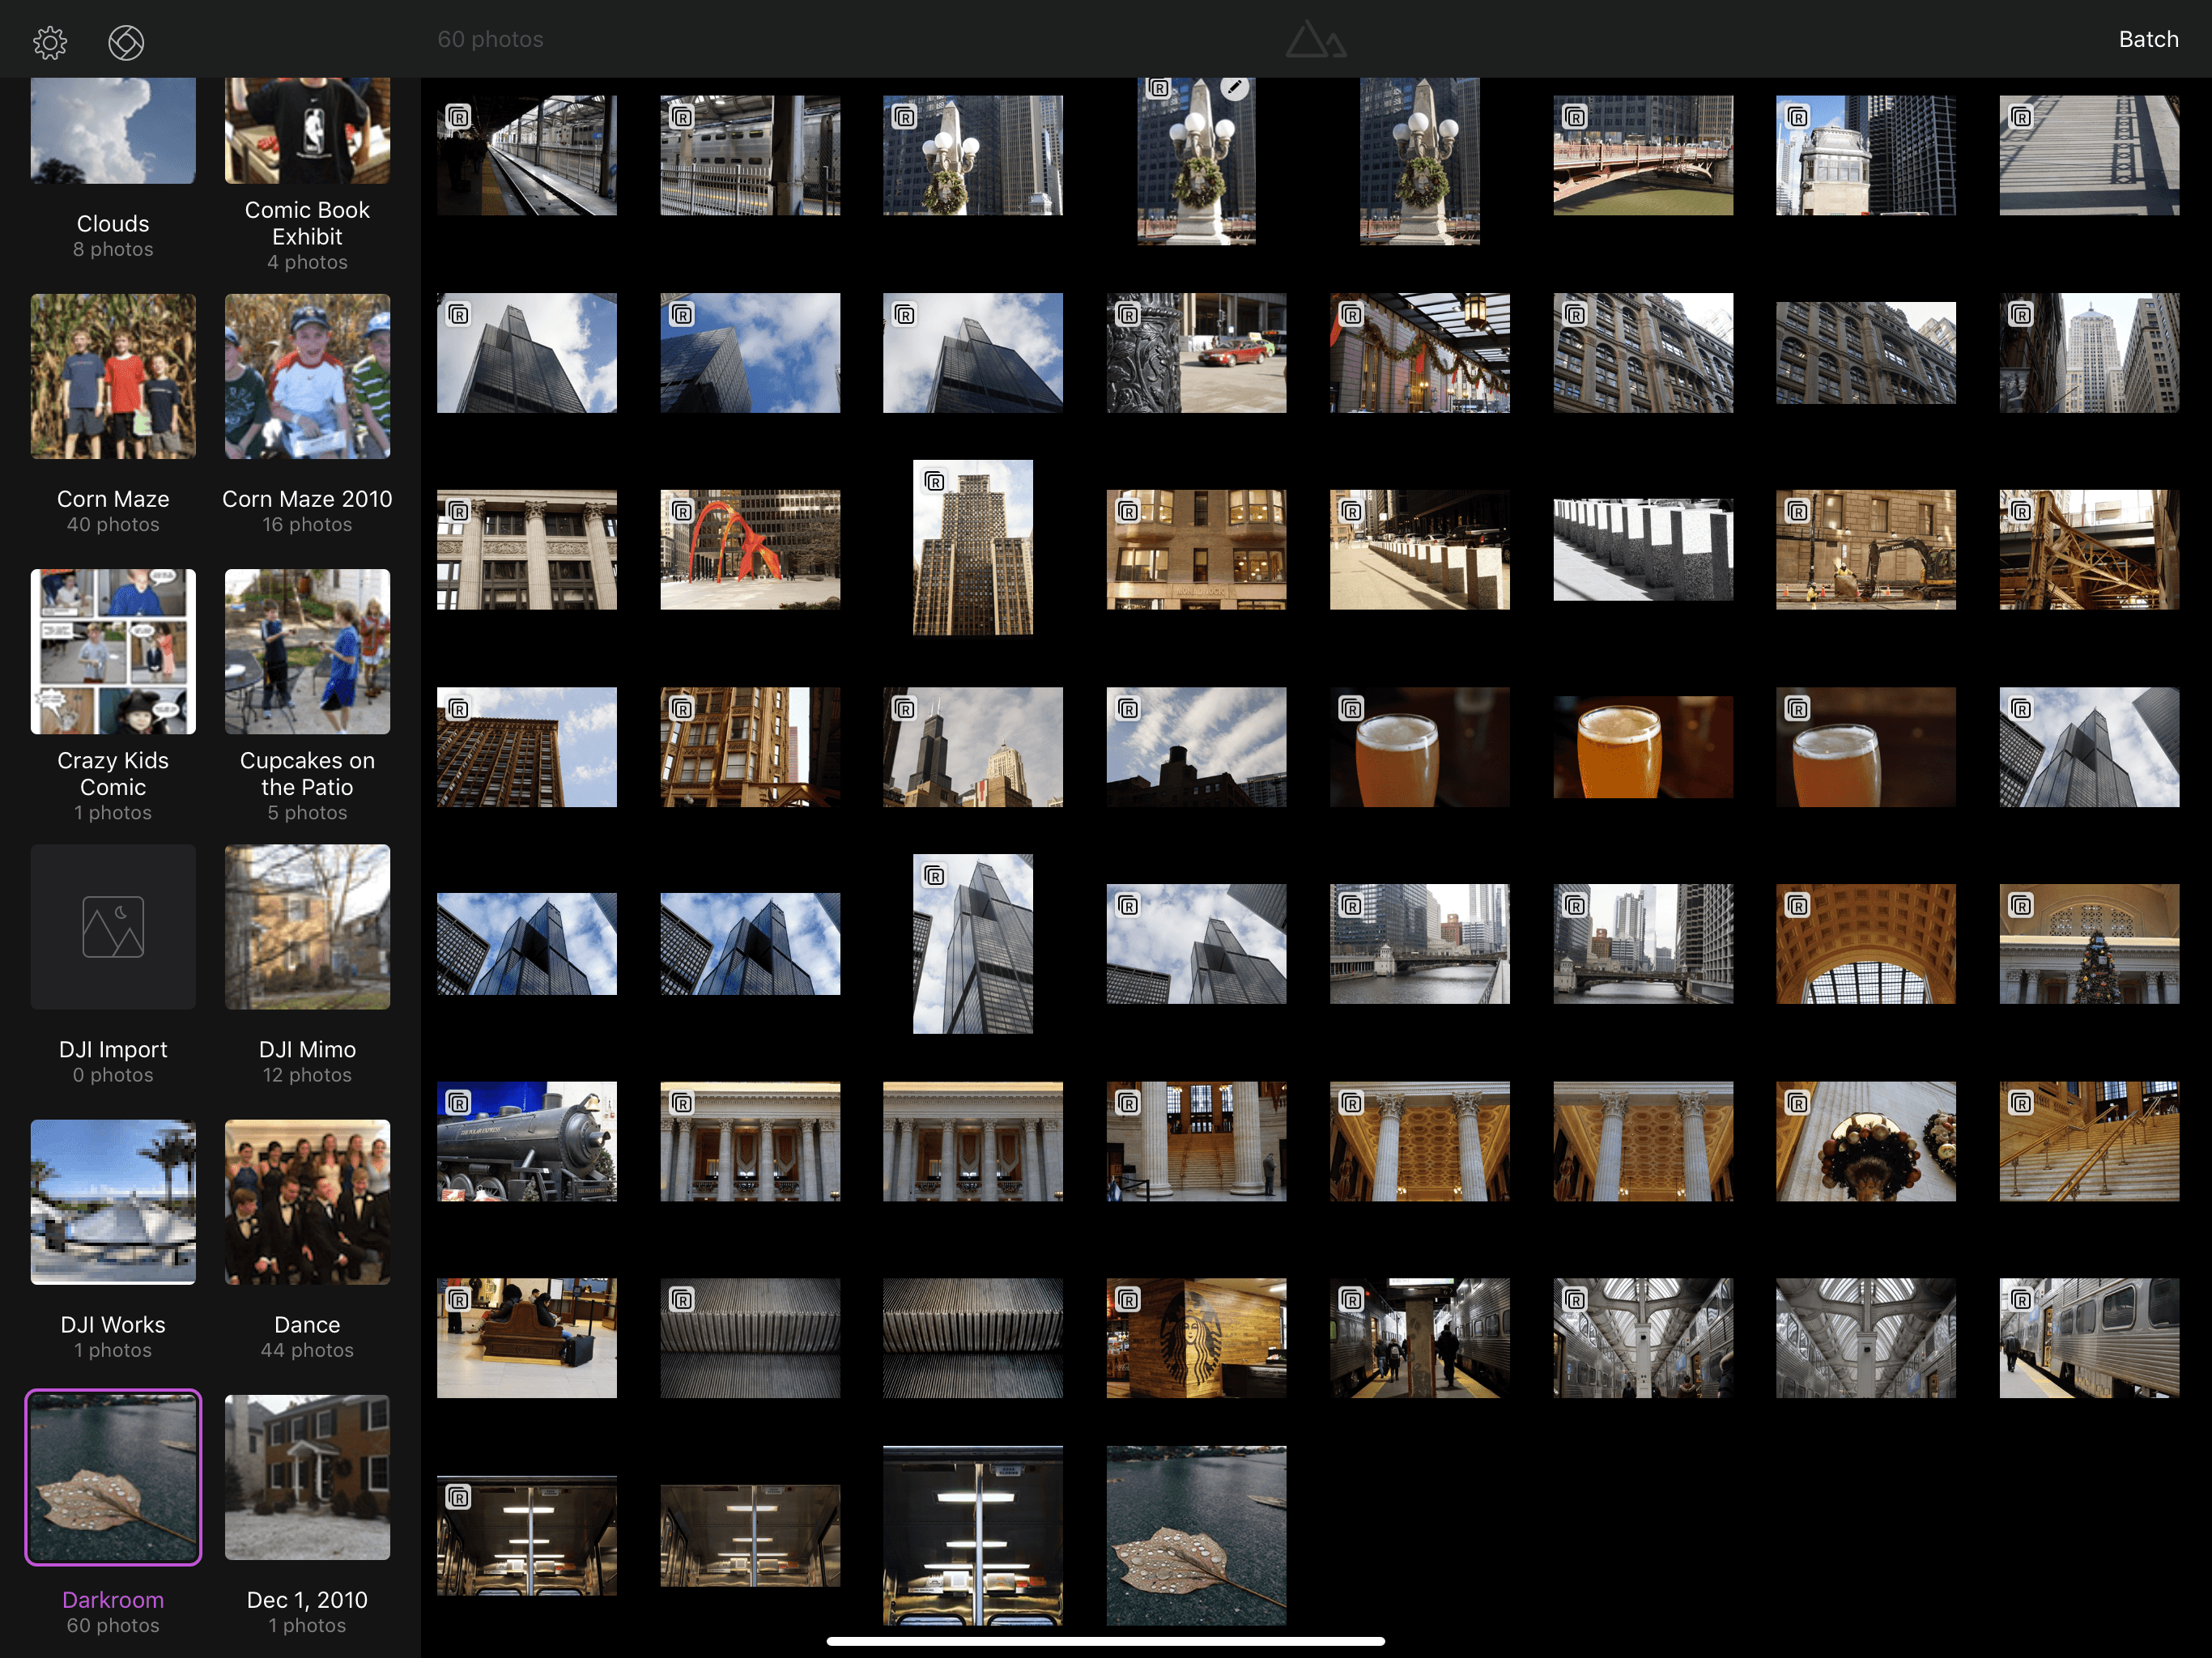 Darkroom's library view includes albums on the left and thumbnails of your photos on the right.